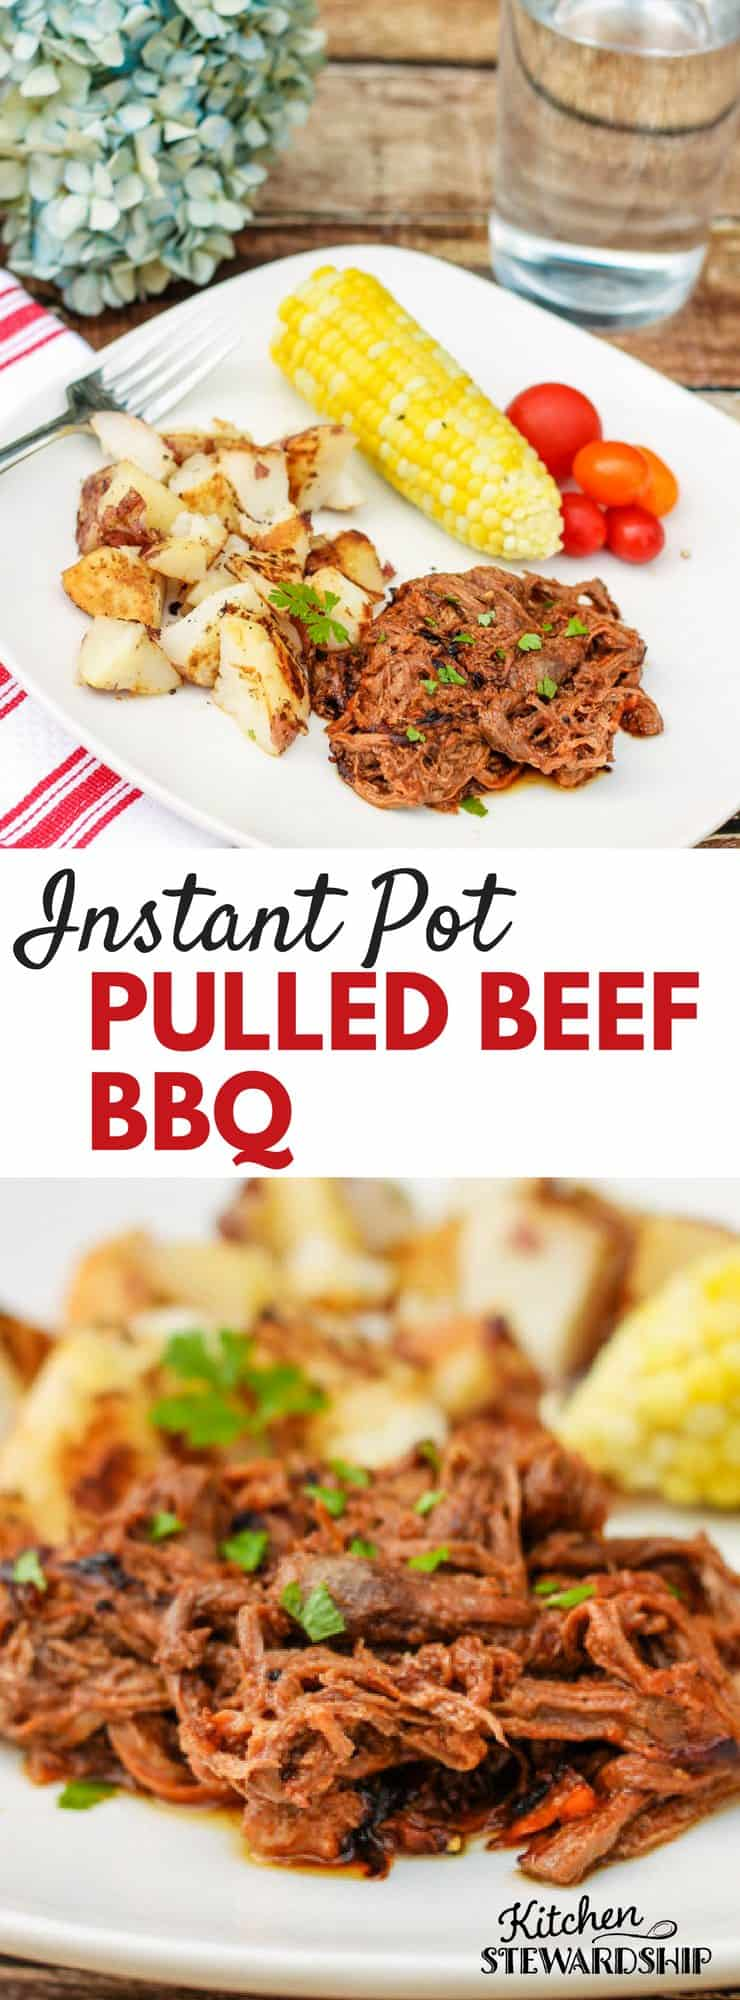 Instant Pot Pulled Beef BBQ